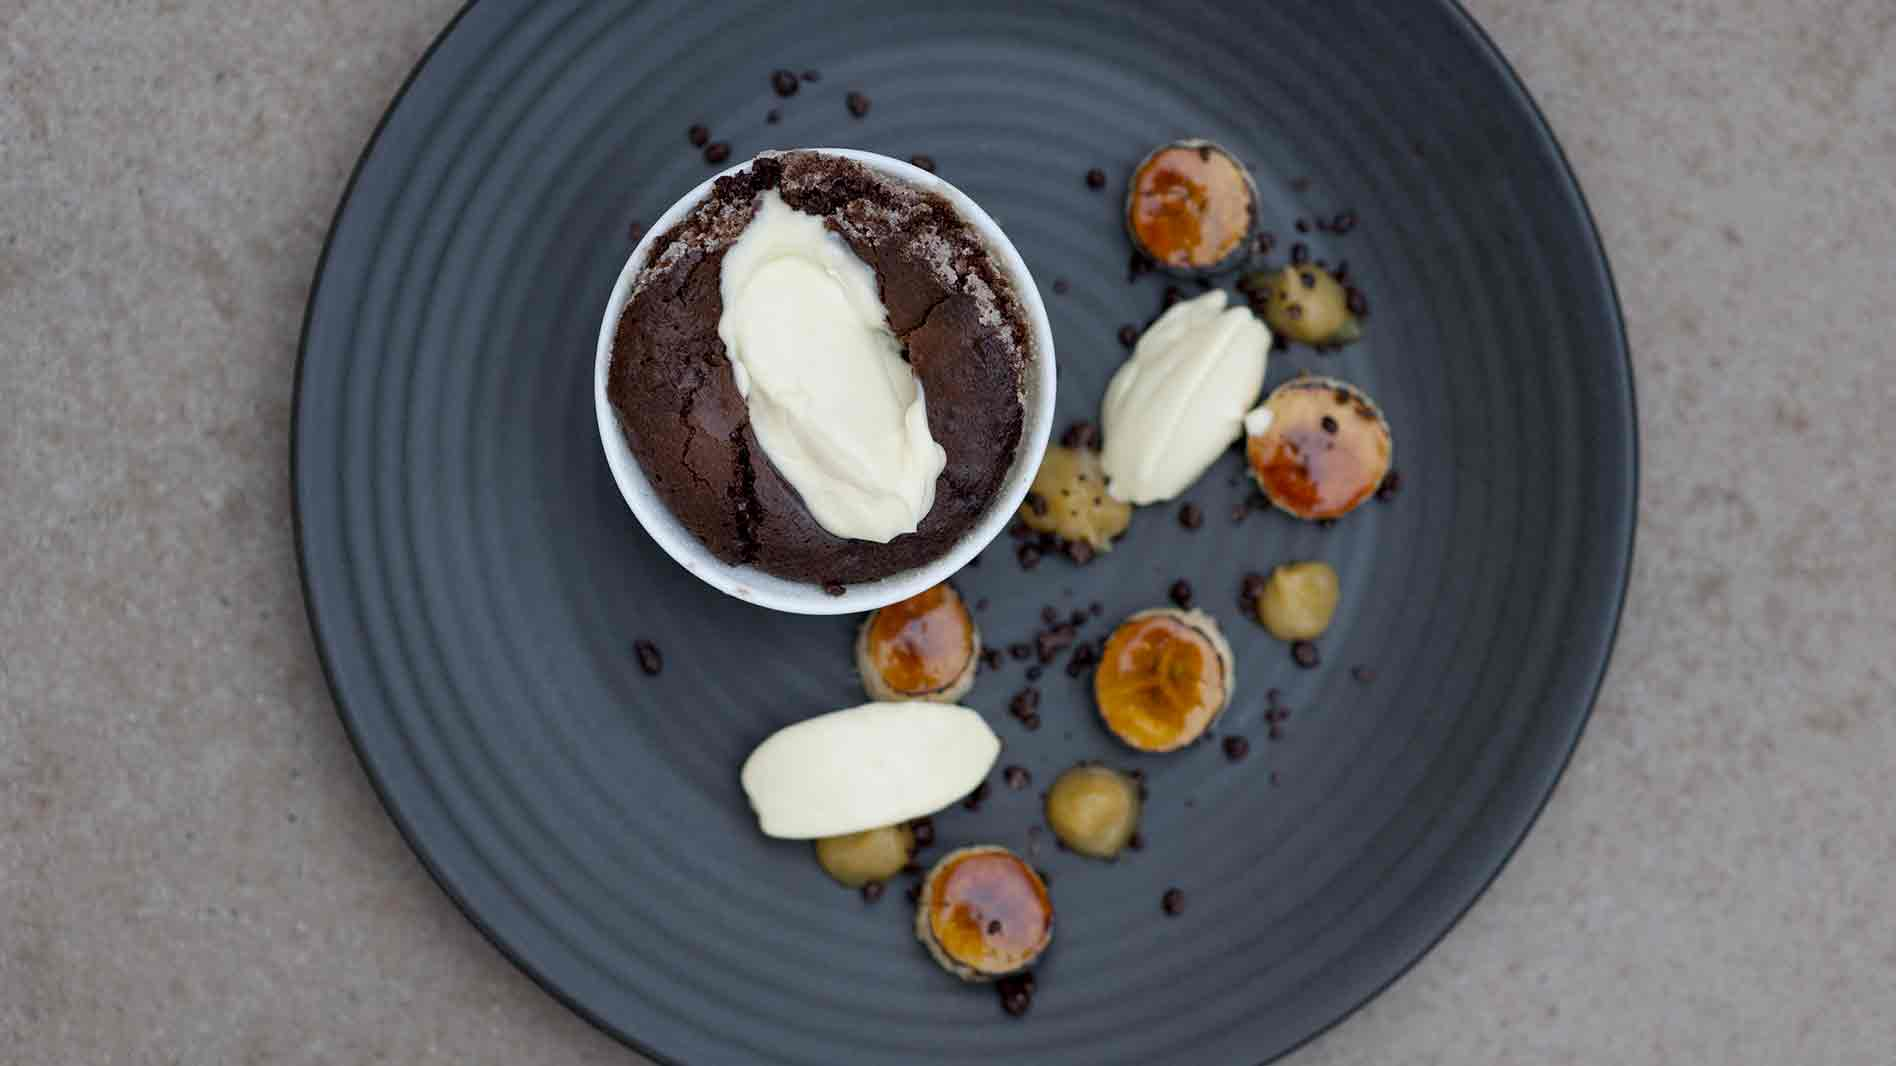 Chocolate Self Saucing Pudding, with Creme Fraiche and Salted Caramel